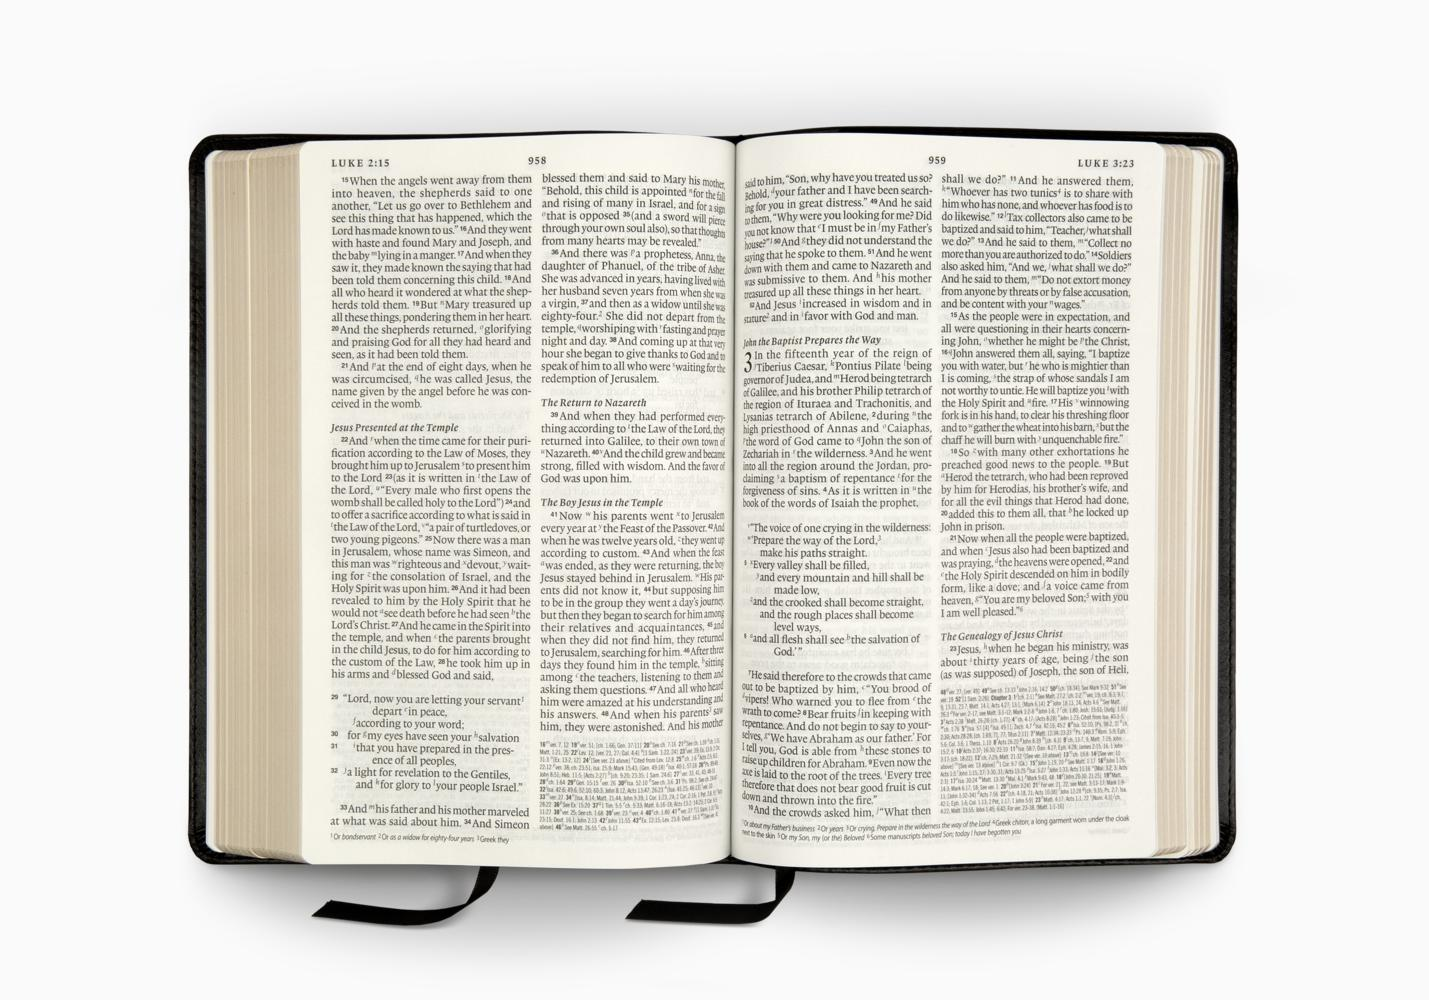 ESV Bible with Creeds and Confessions